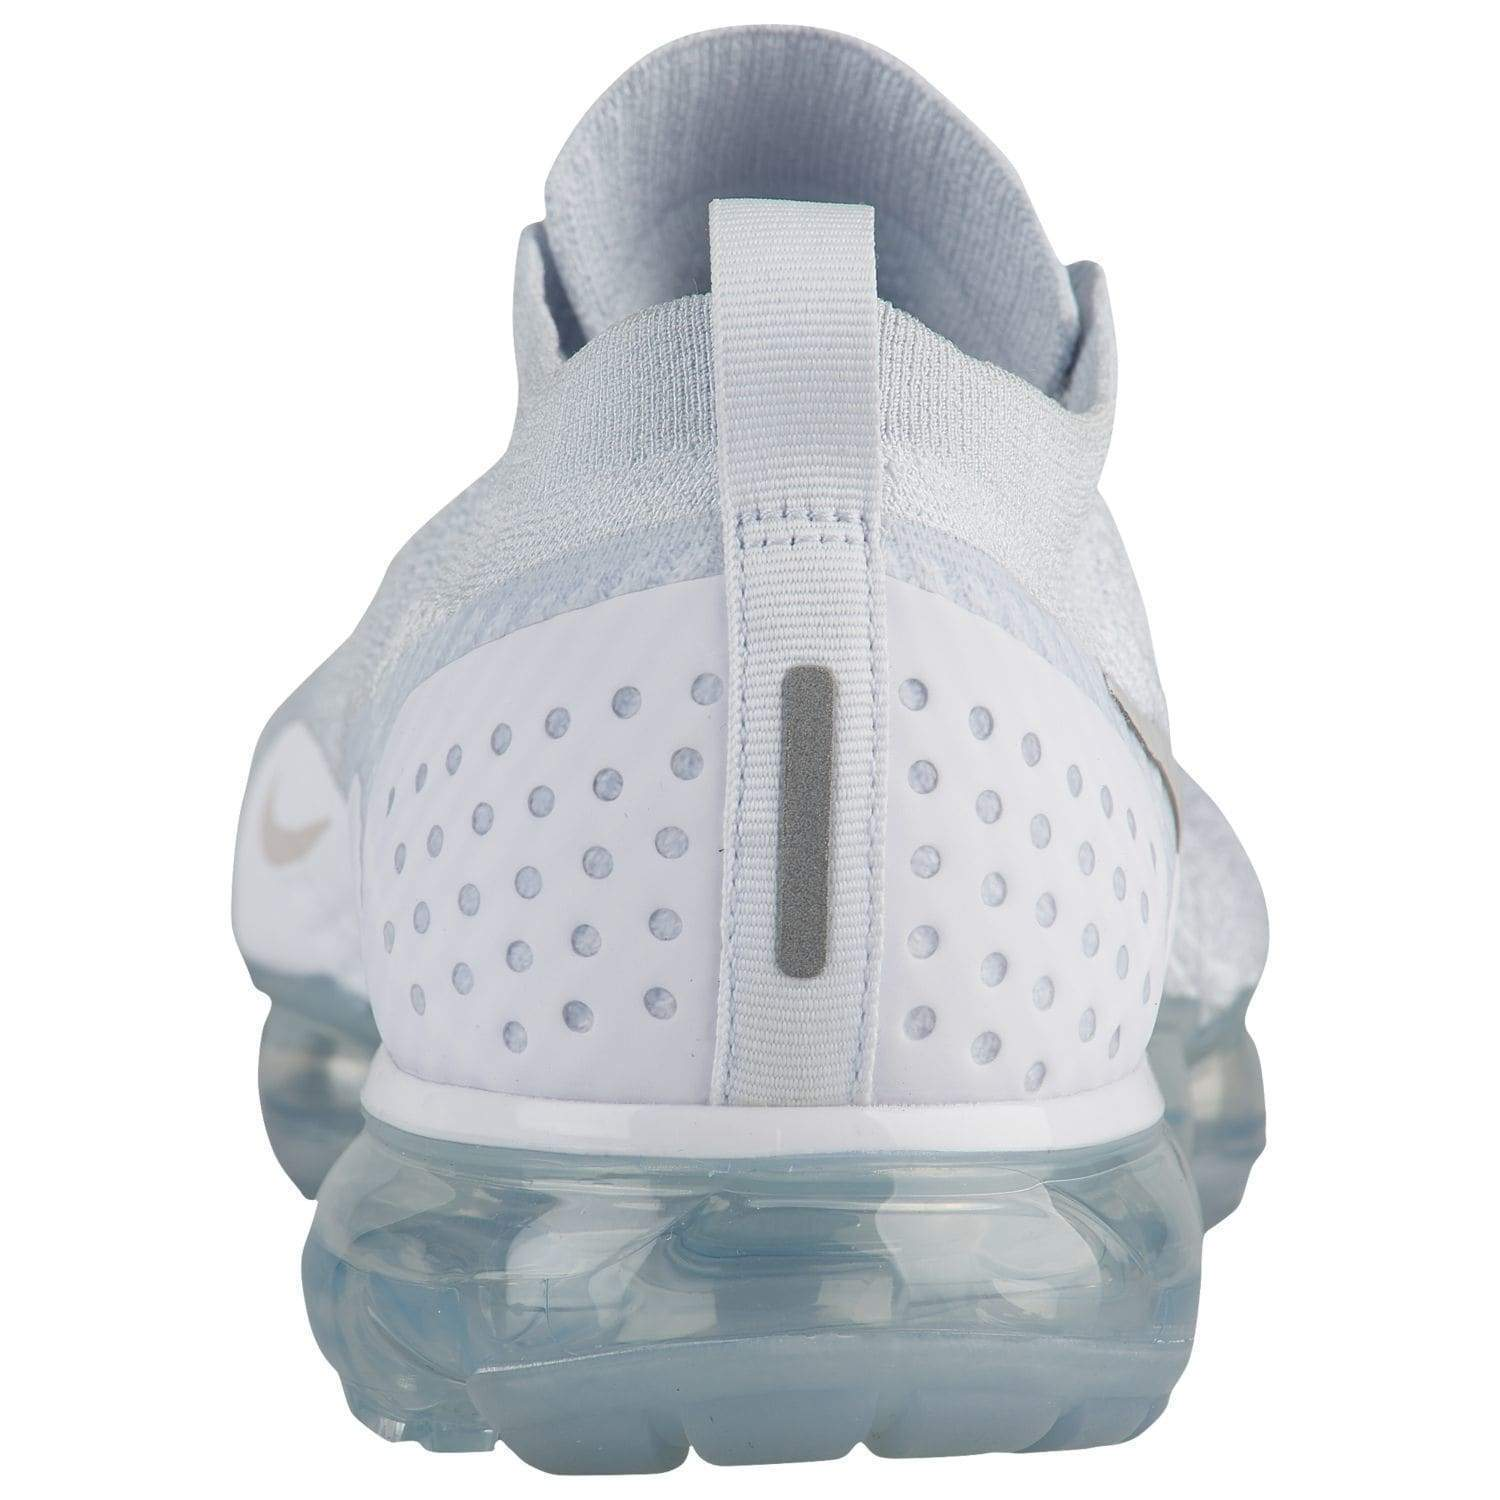 Air Vapormax Flyknit 2 - Mens Running Shoes - 942842-105 - White. Size  Charts e00ca3d6a